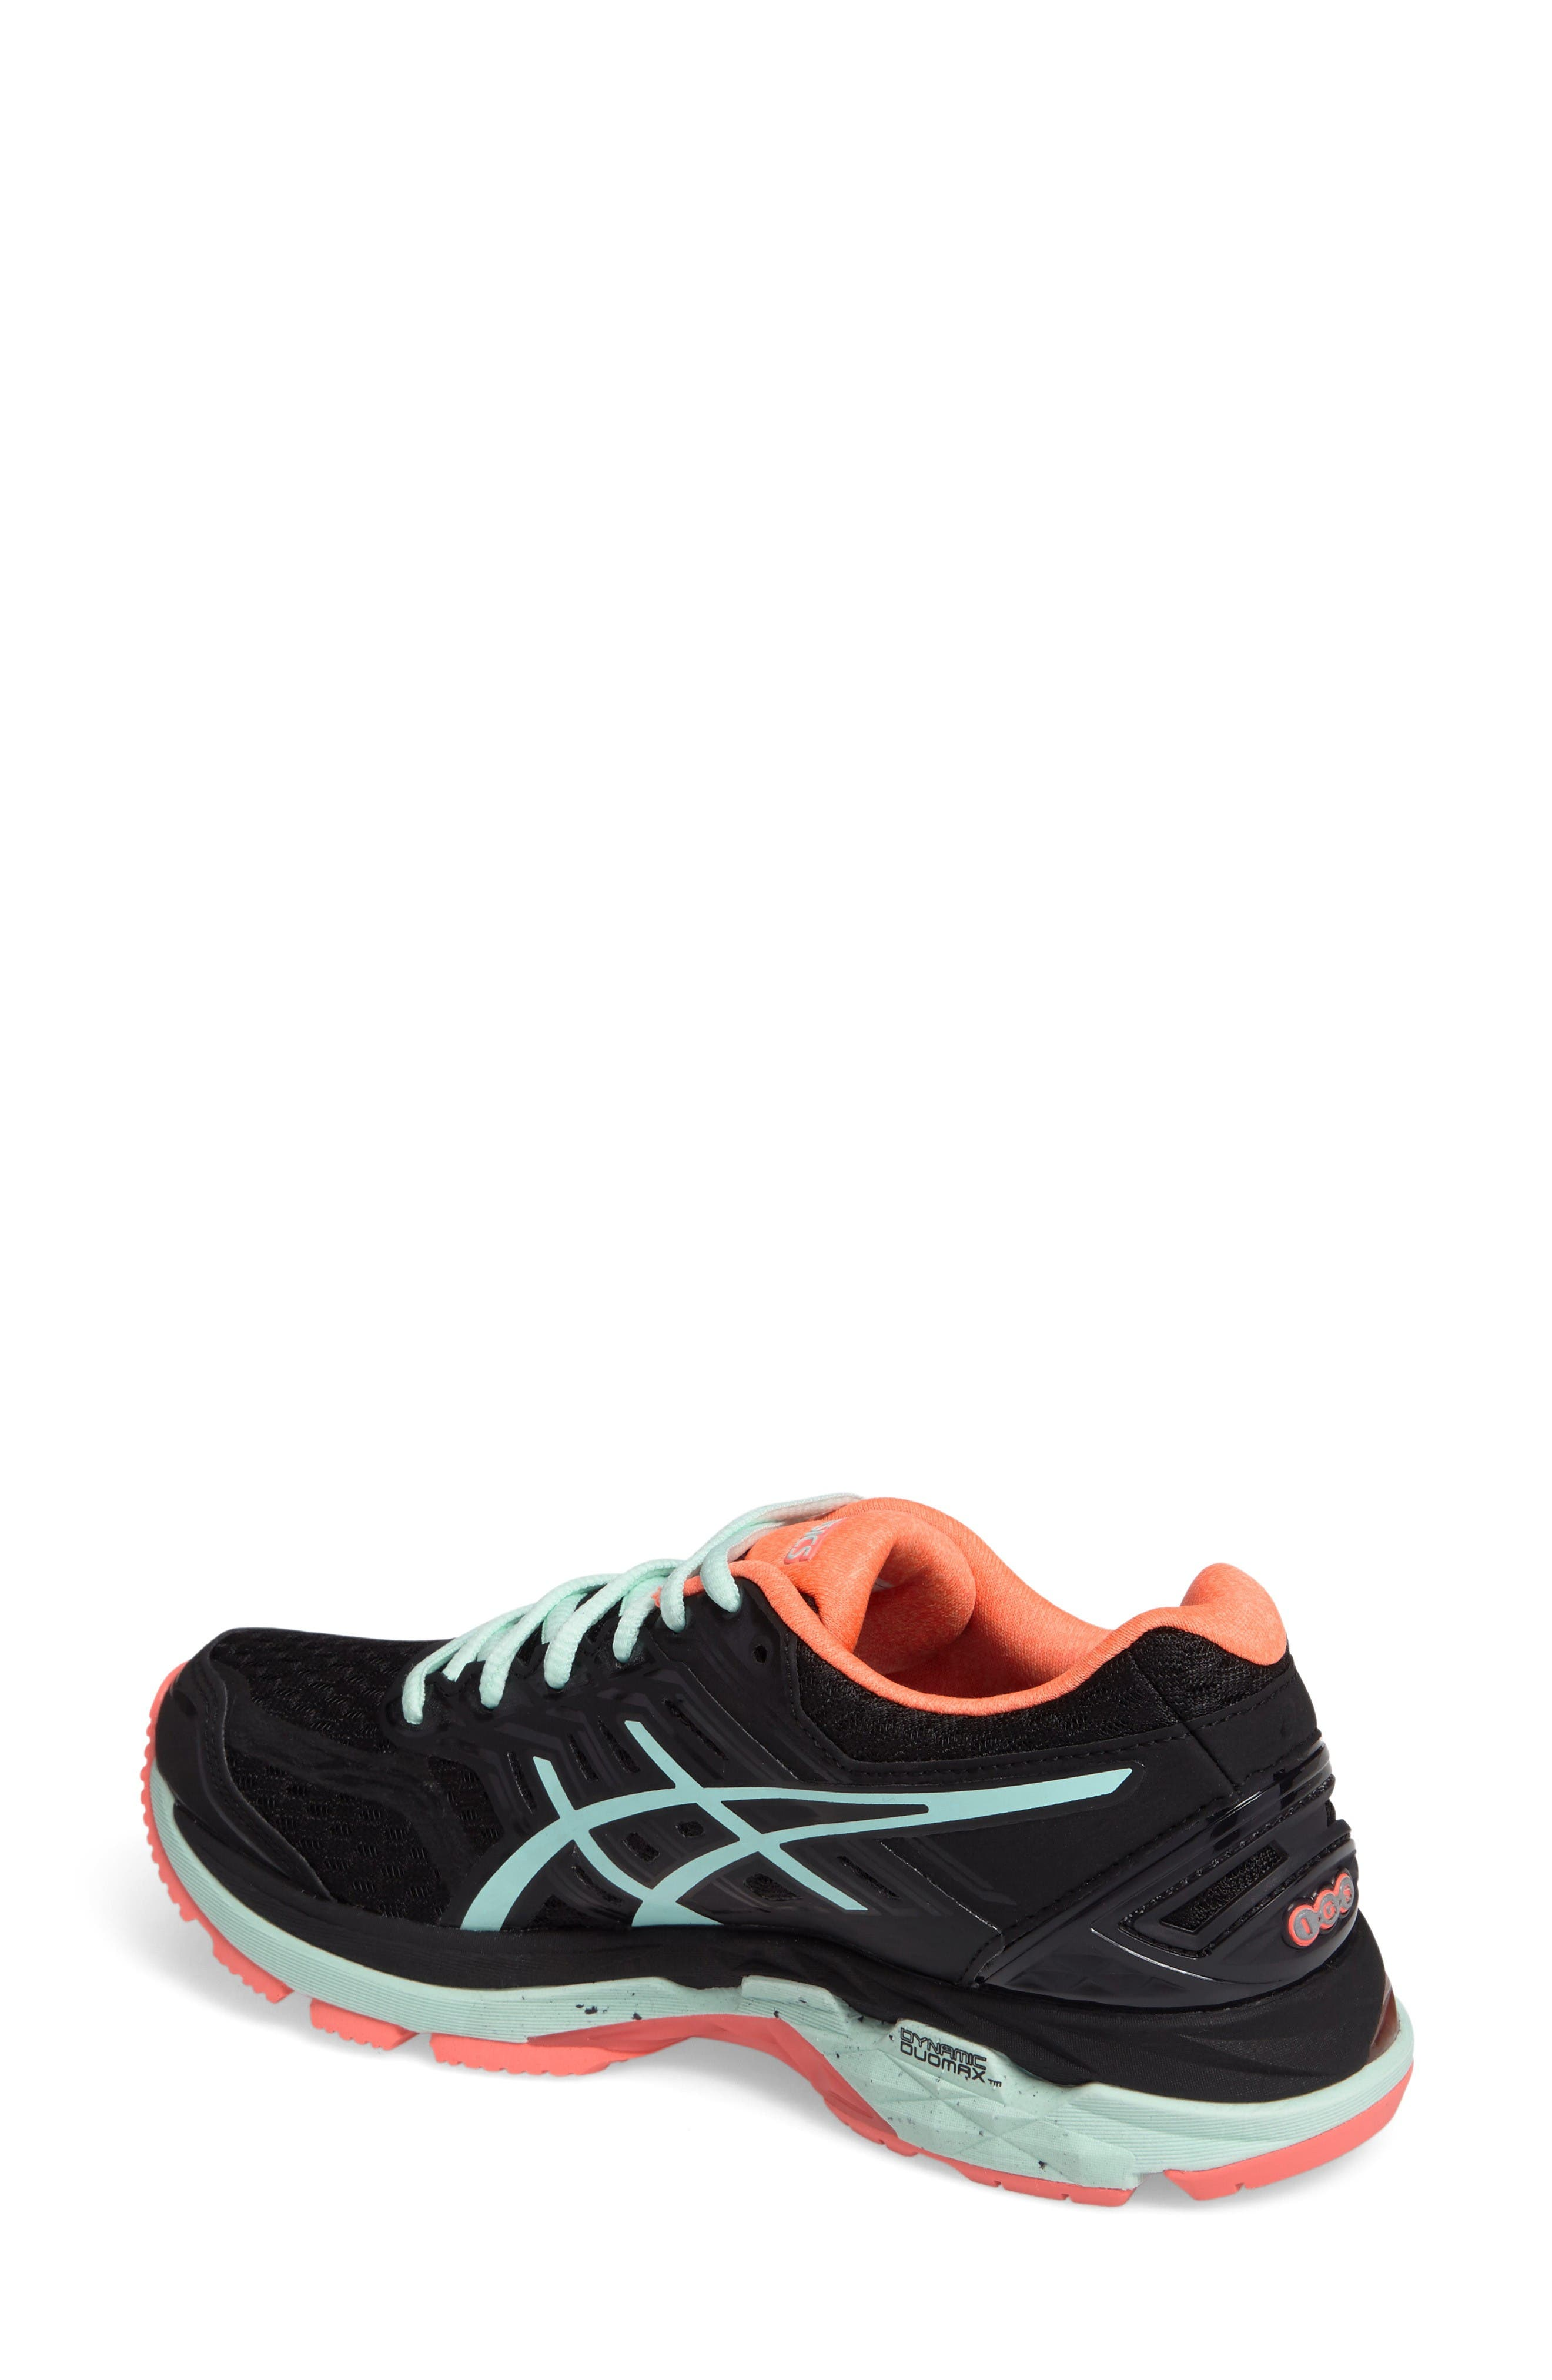 the best attitude de24d 00bfd ... italy asics shoes nordstrom nordstrom 6bea5 4c953